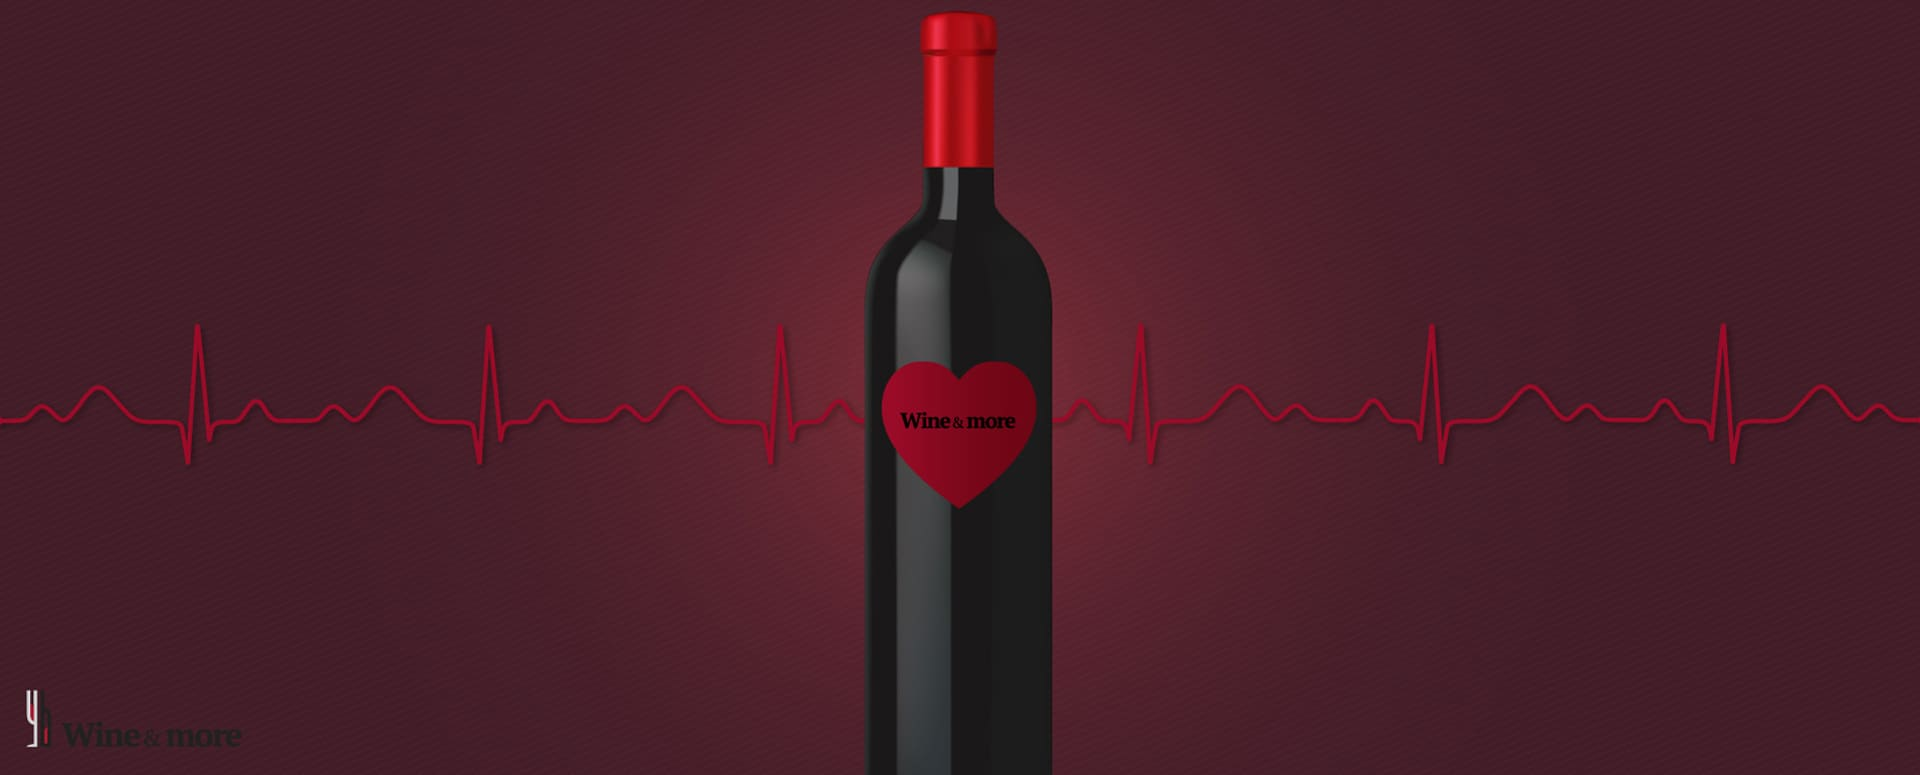 10 reasons why drinking wine is good for you - The Wine & More